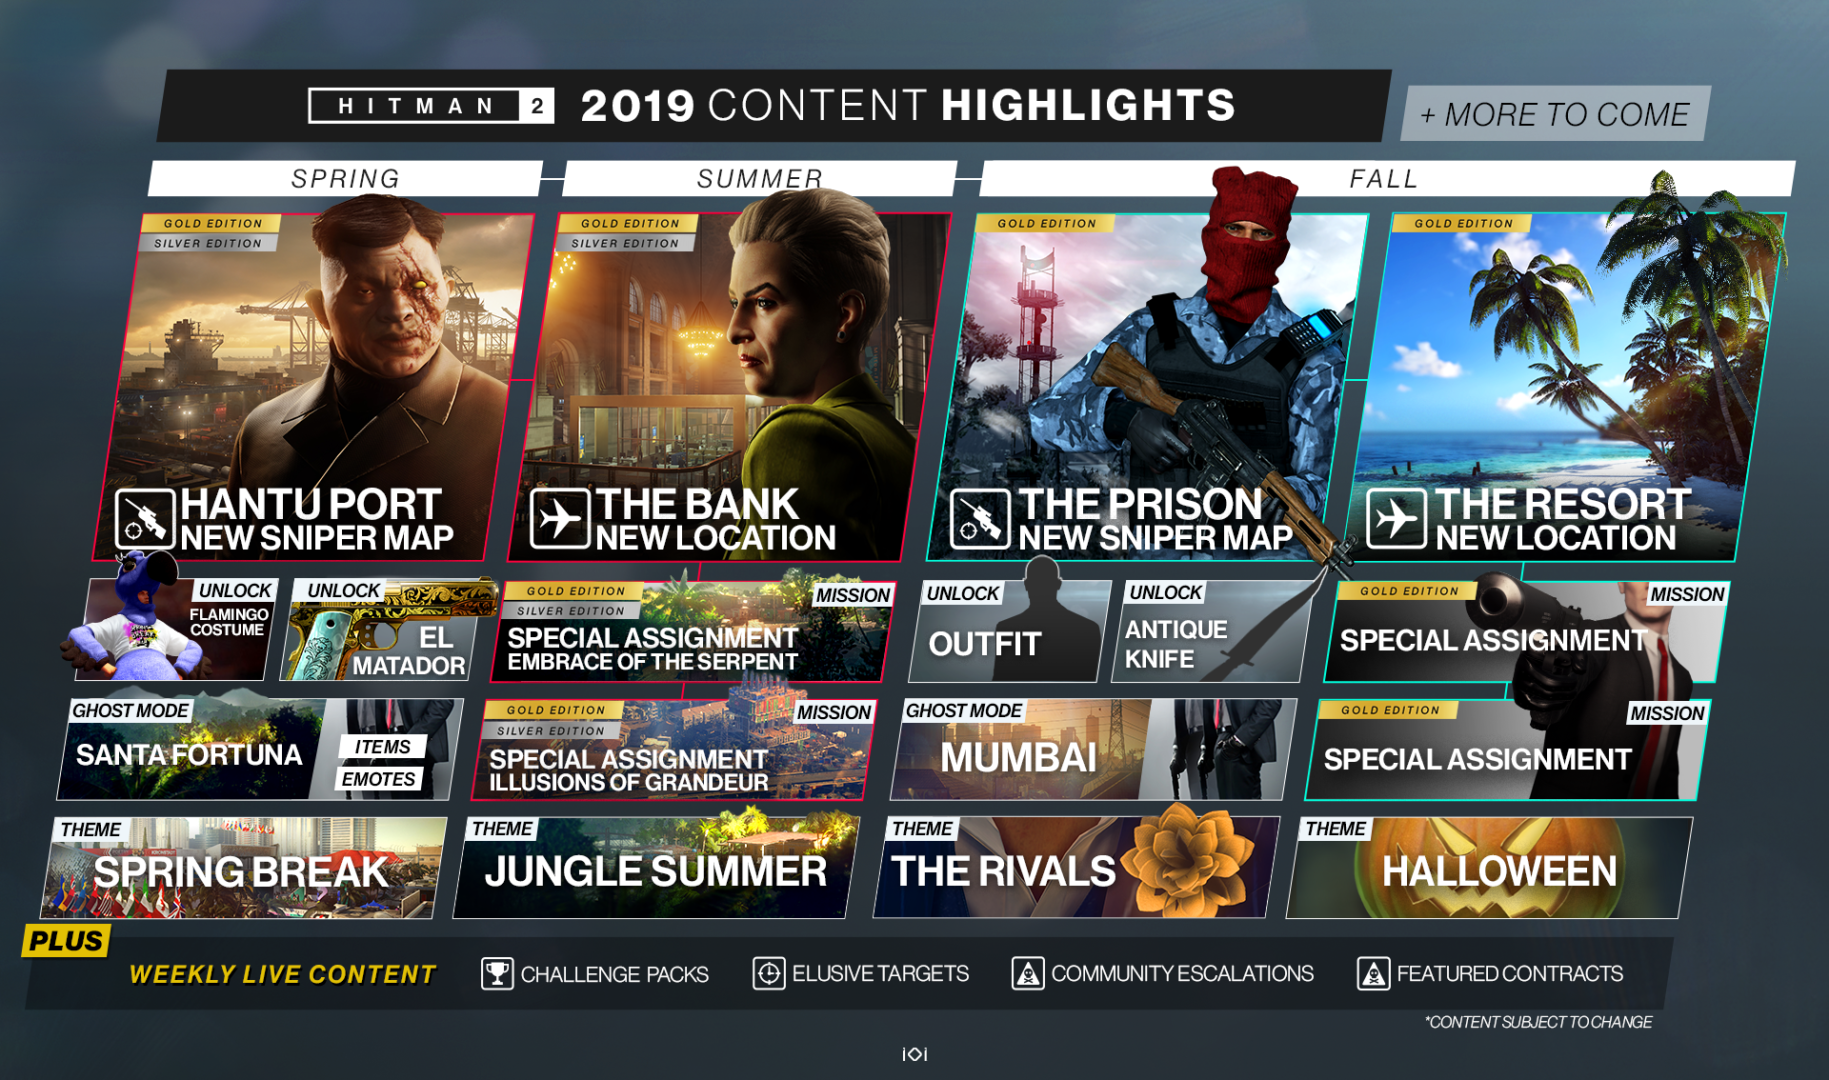 Hitman 2 Roadmap 2019